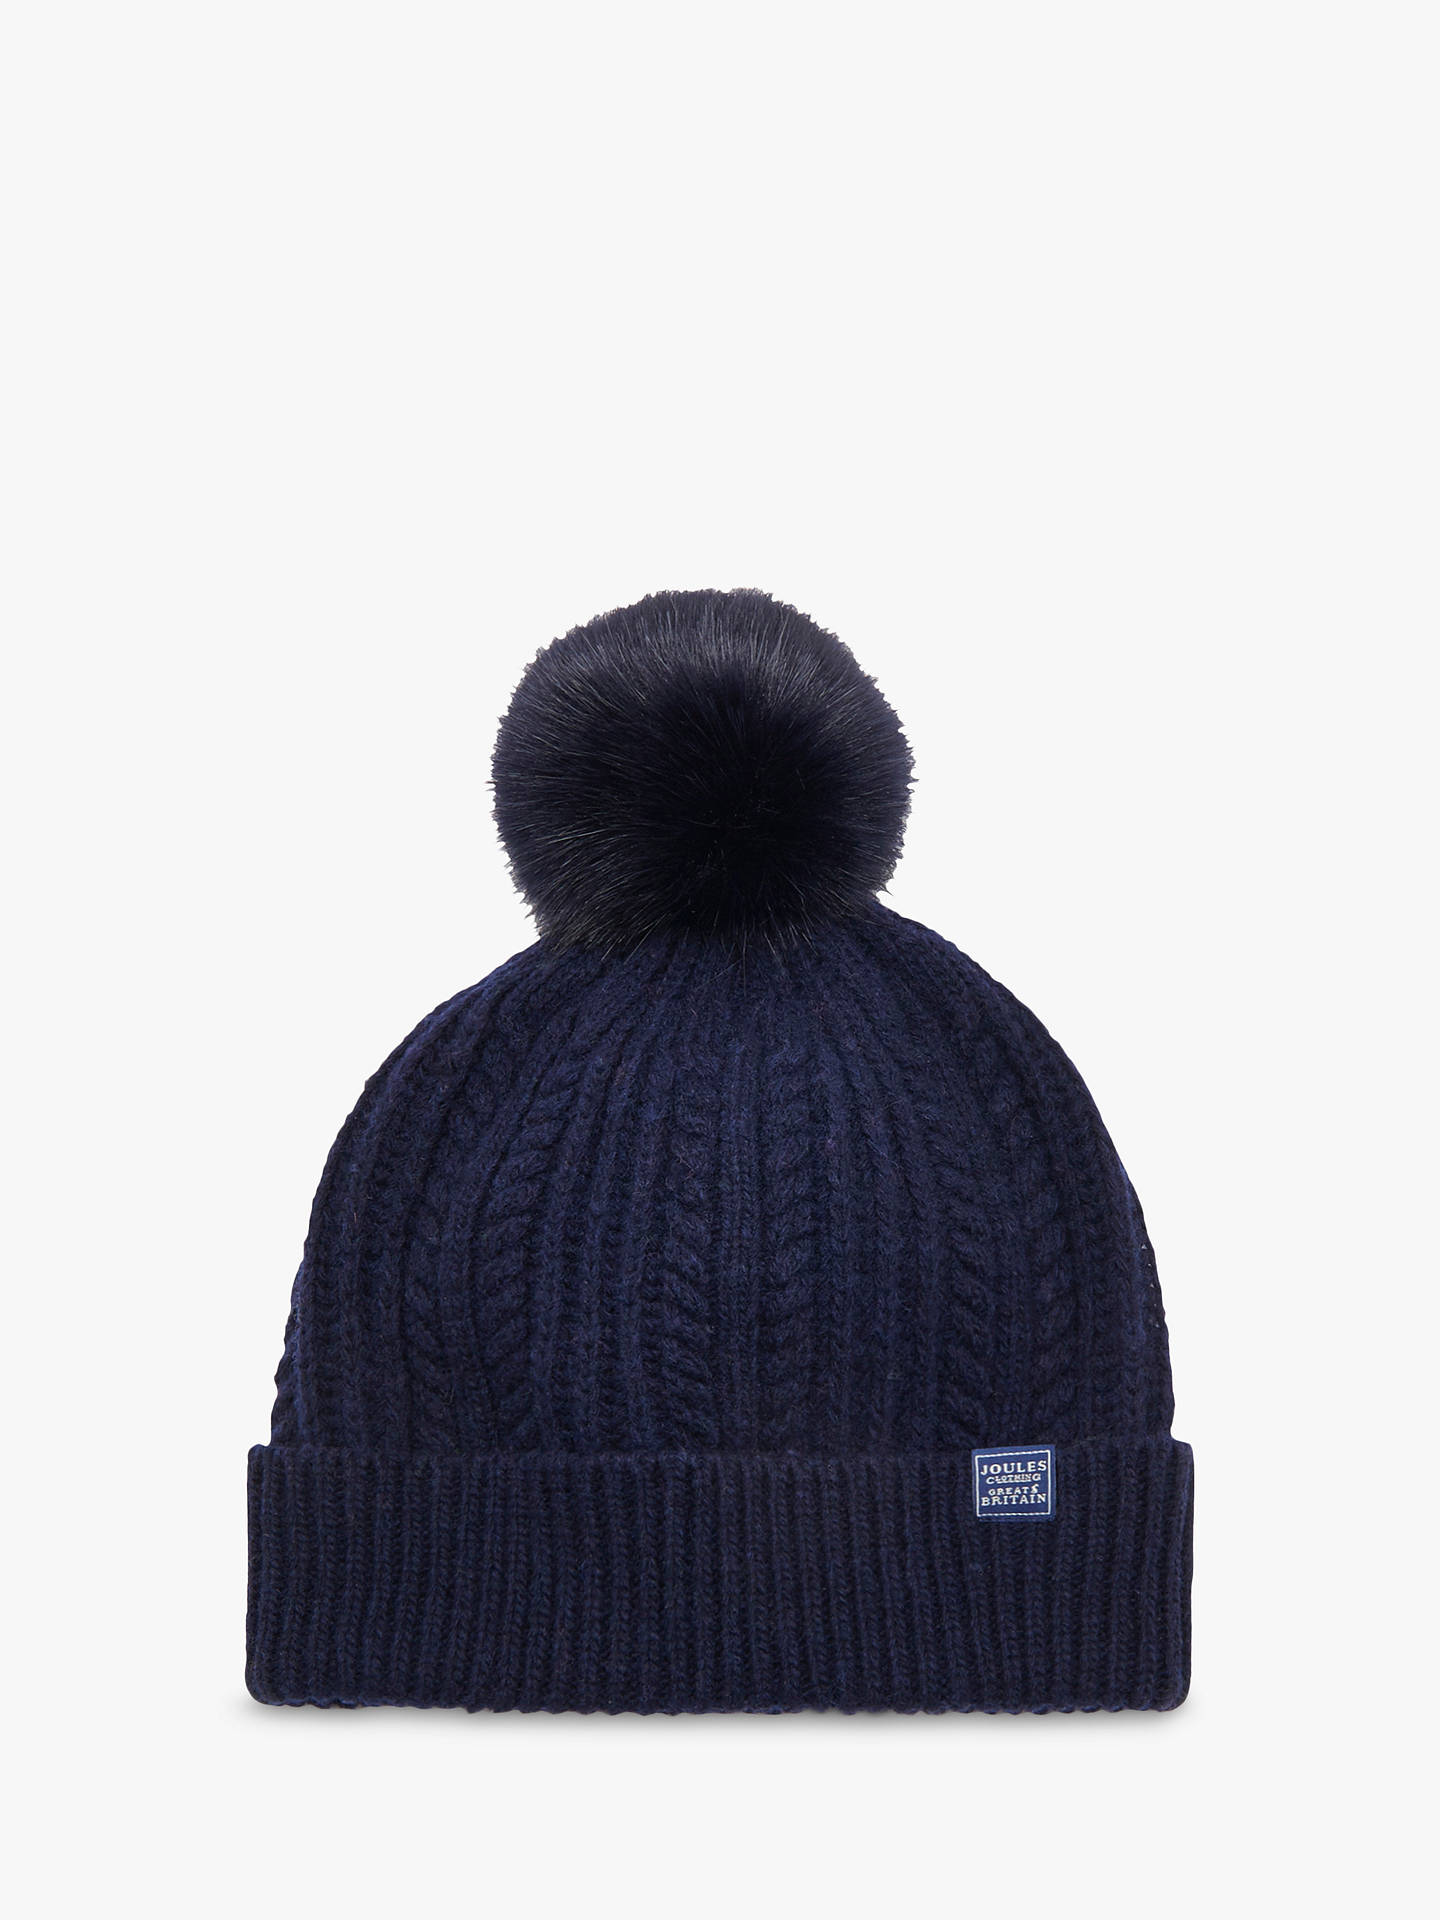 14ee34a411ce8 Offer  Joules Bobble Hat at John Lewis   Partners